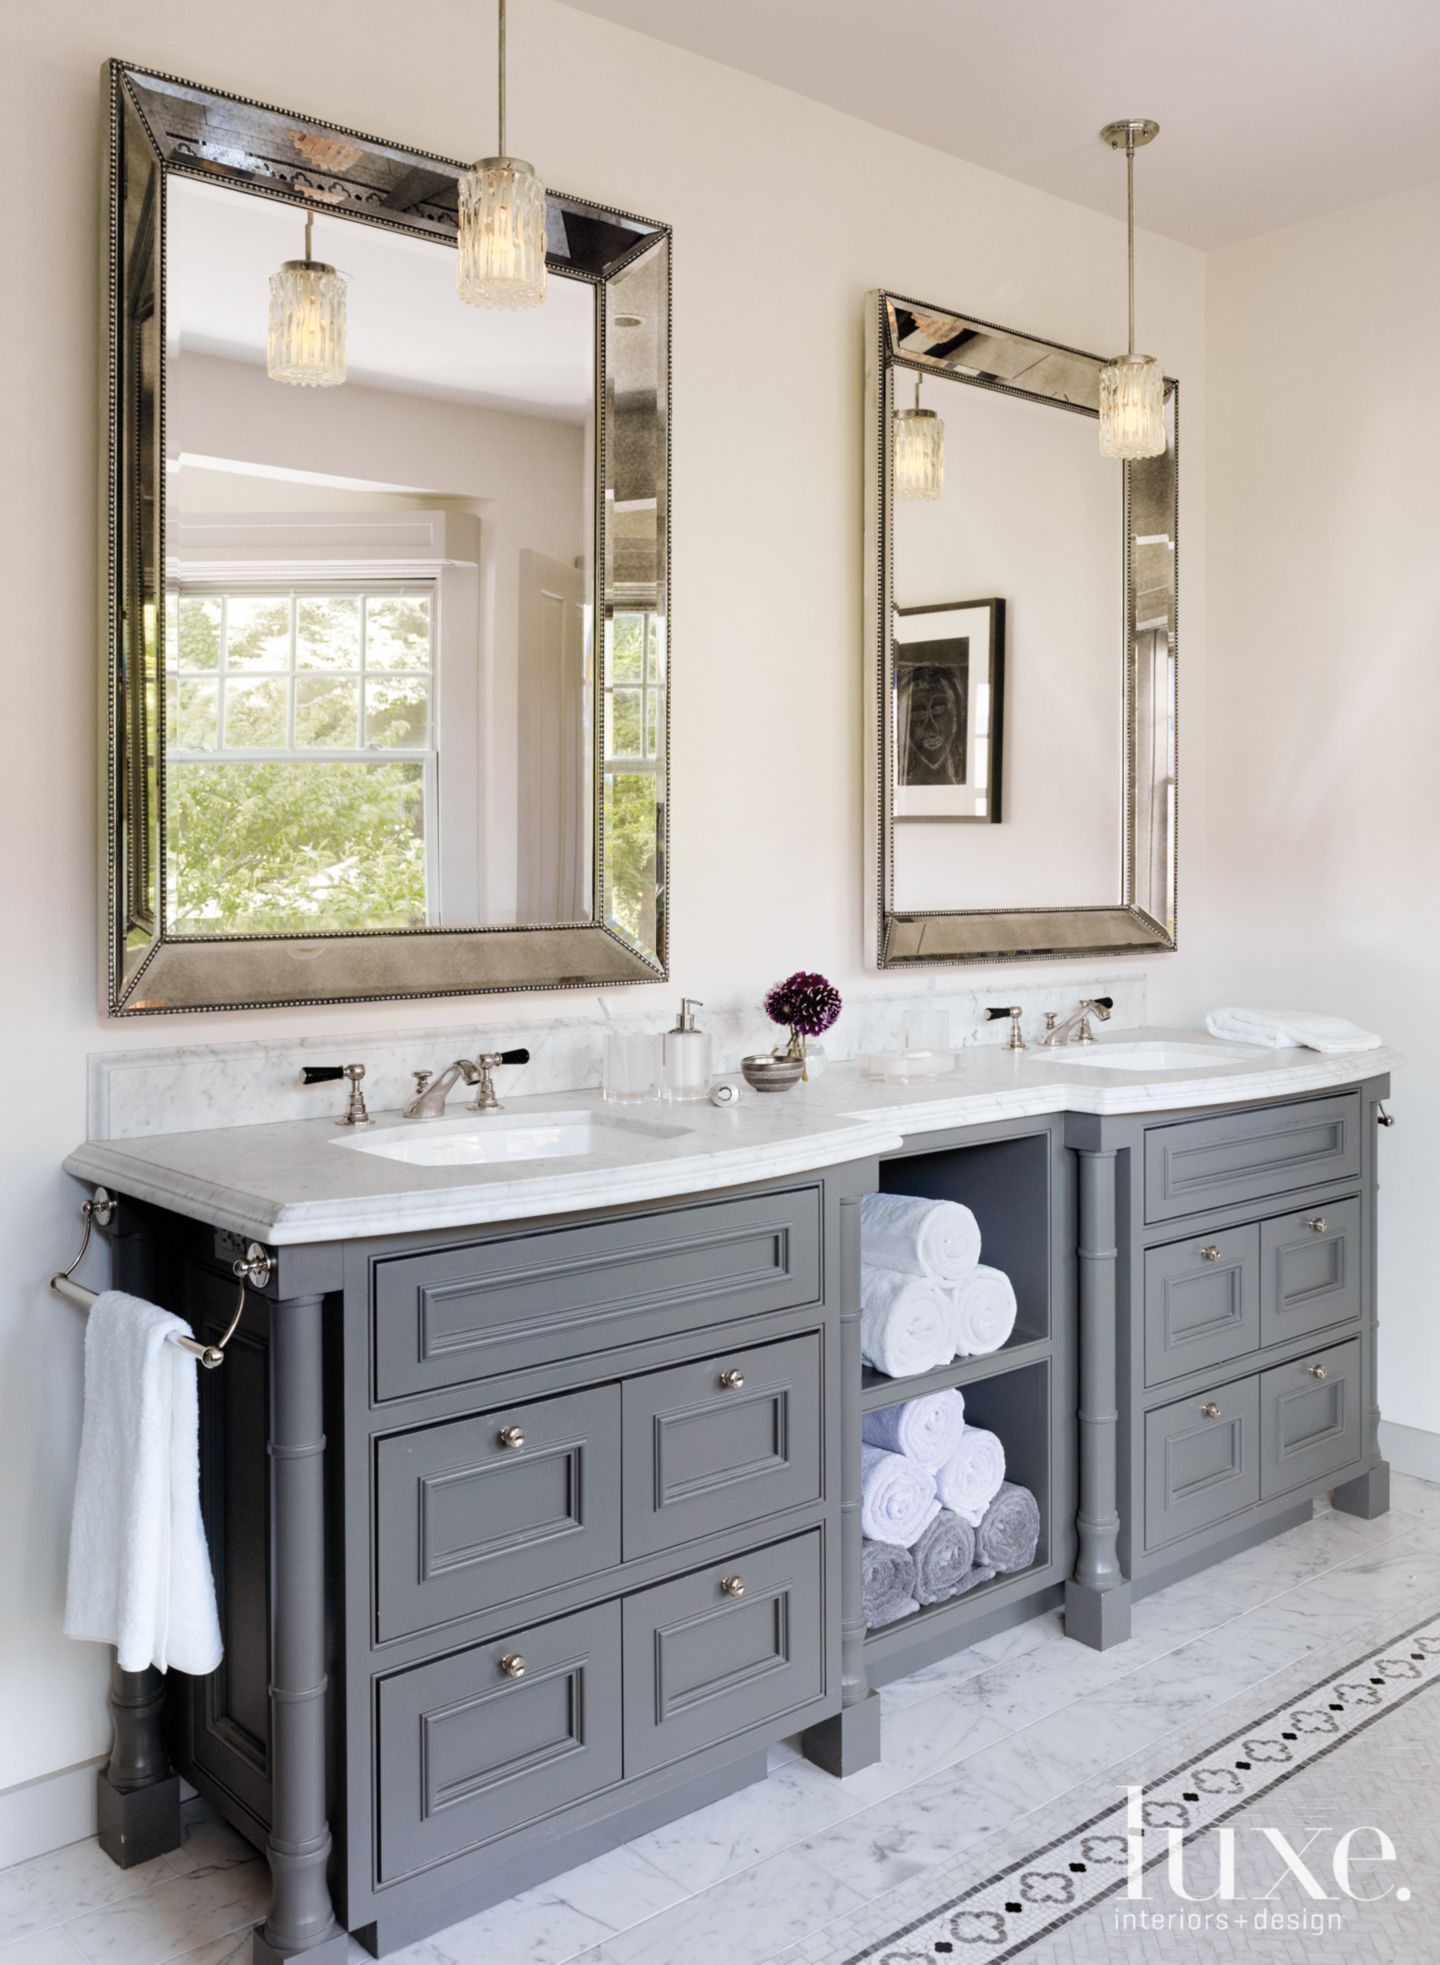 Bathroom Vanities You Ll Love Bathroomvanities Traditional